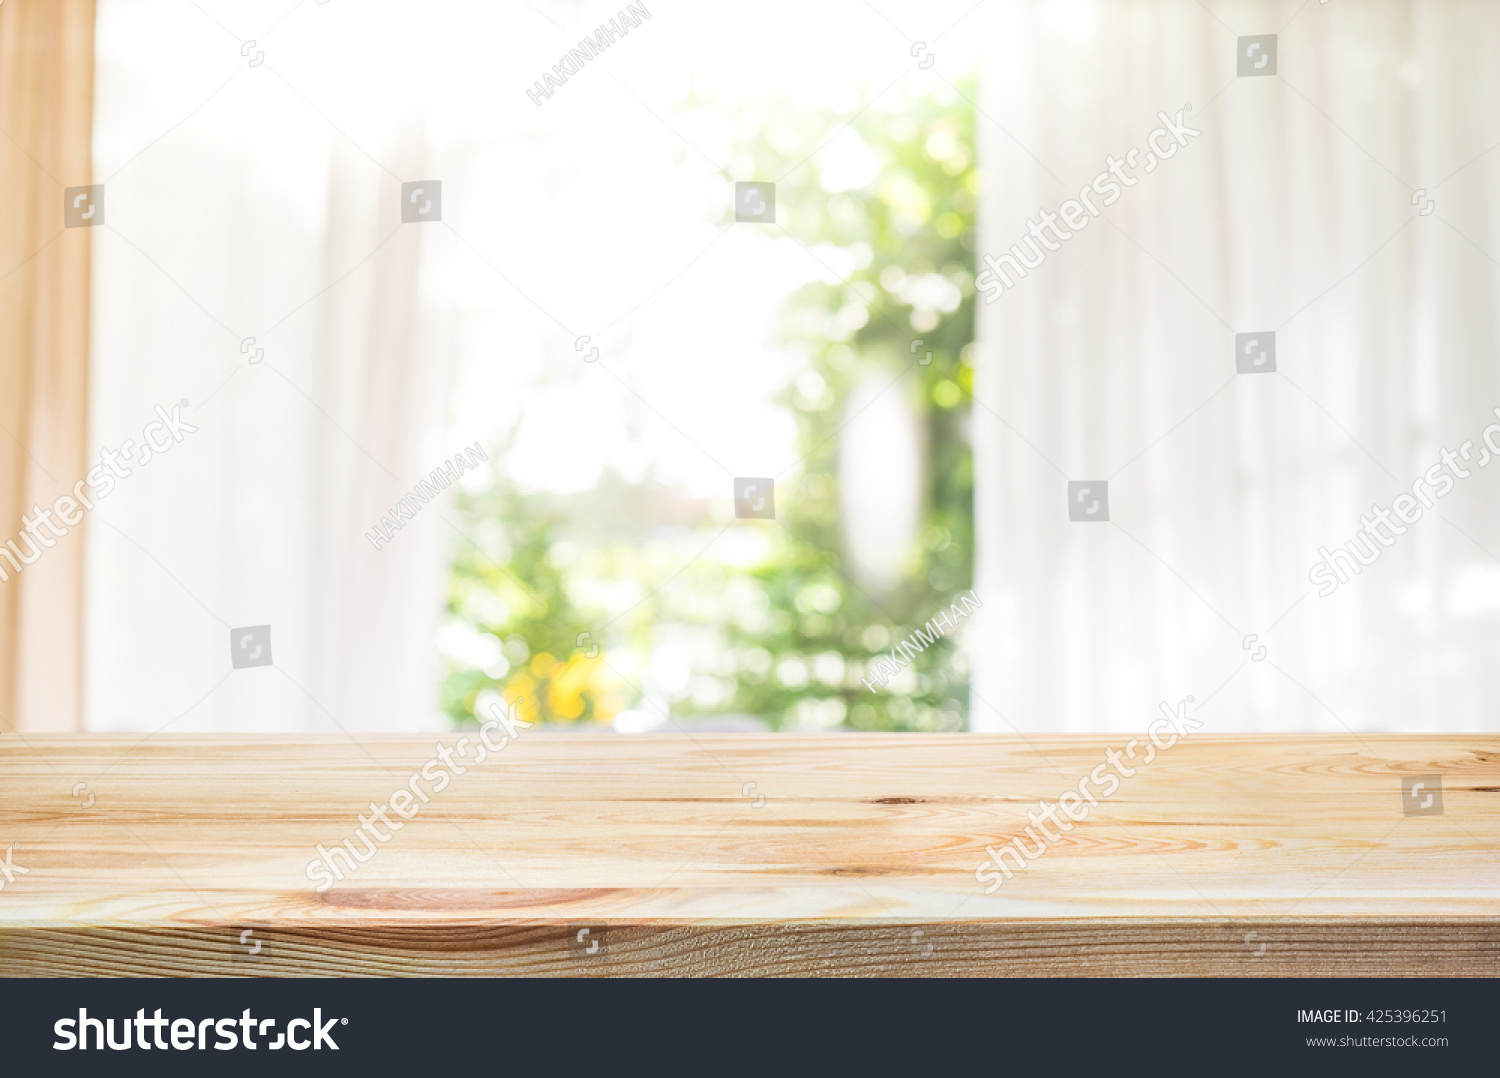 Empty of wood table top on blur of curtain window and abstract green from garden with sunlight .For montage product display or design key visual layout